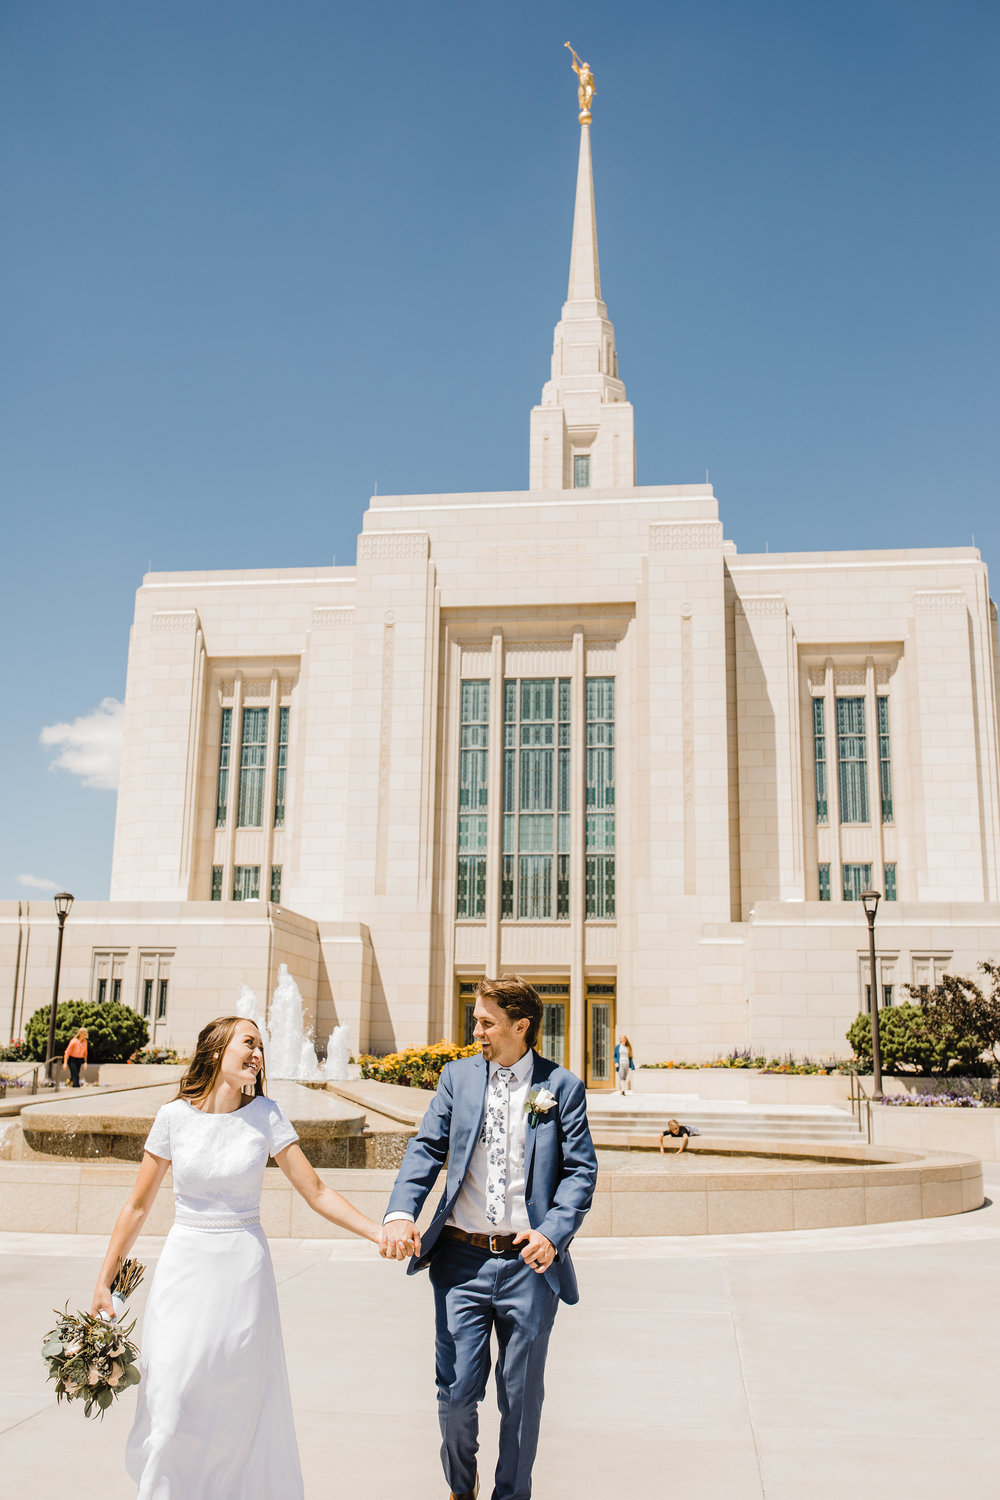 professional wedding photographer in logan utah temple exit lds holding hands laughing running